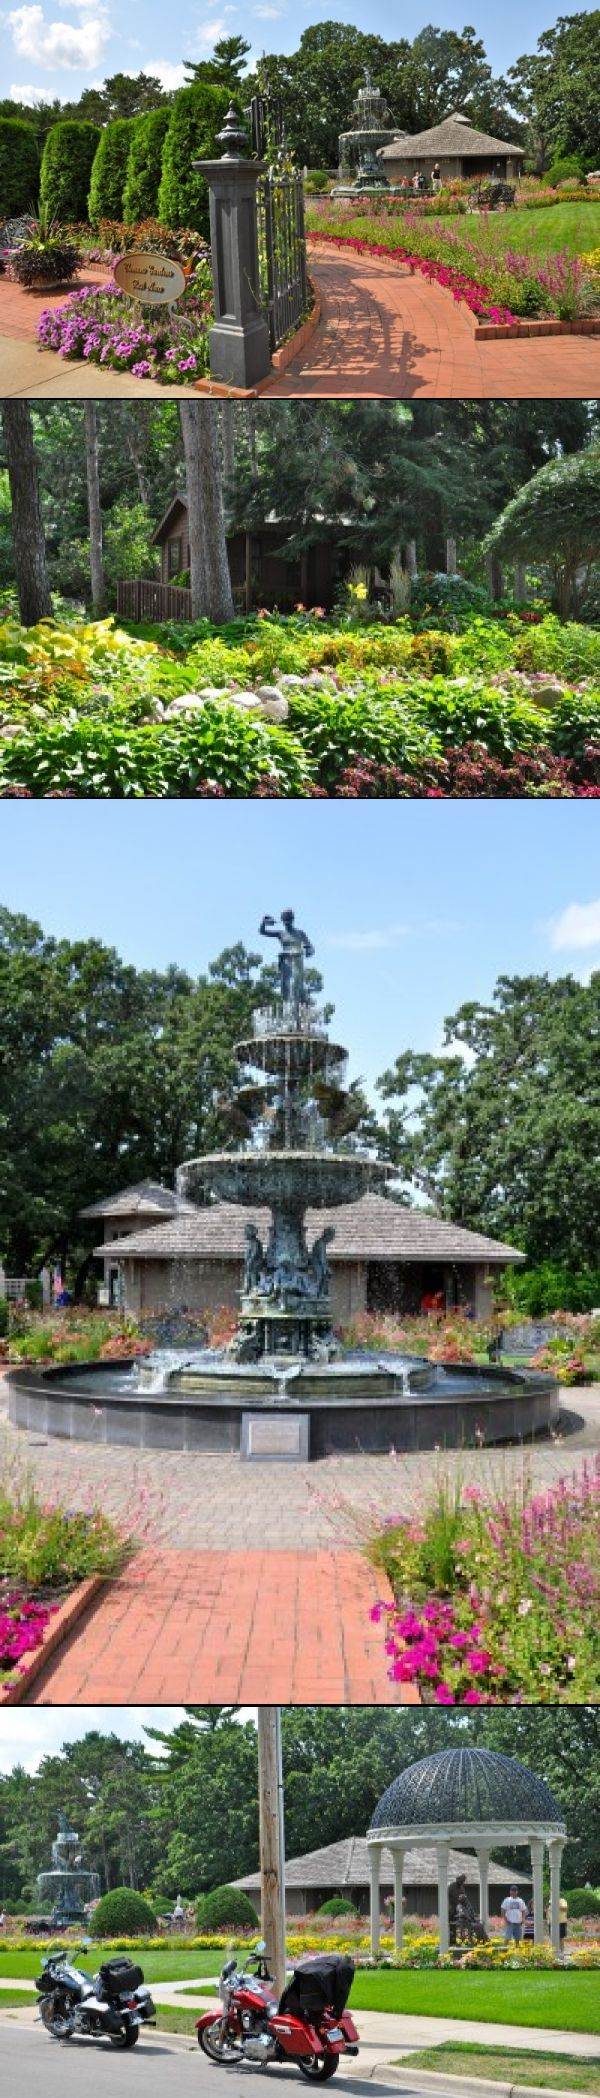 Munsinger & Clemens Gardens- St Cloud MN/on the banks of the Mississippi across from SCSU-formal gardens on higher ground;informal woodland/shade gardens on the slopes, closer to the water. Lovely place to take a stroll or spread a blanket--free admission